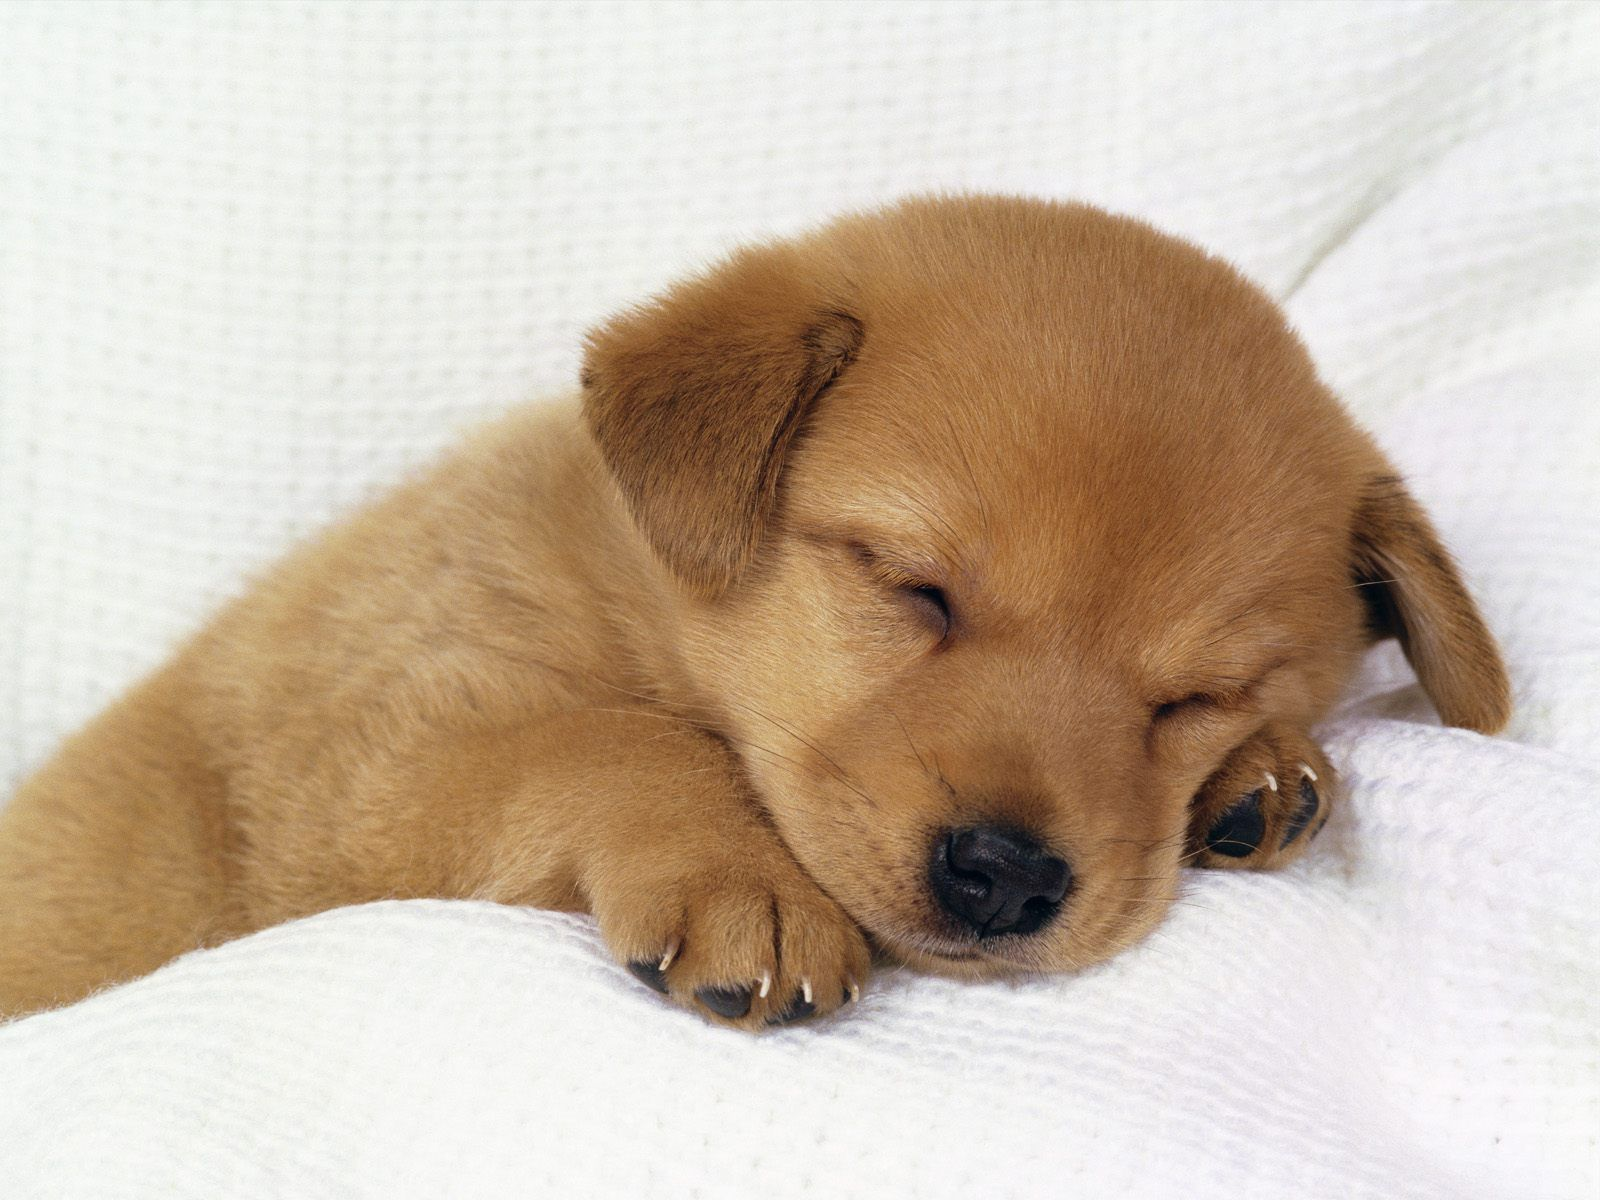 Cute Baby Dog Wallpapers Backgrounds | Wallpapers | Pinterest ...